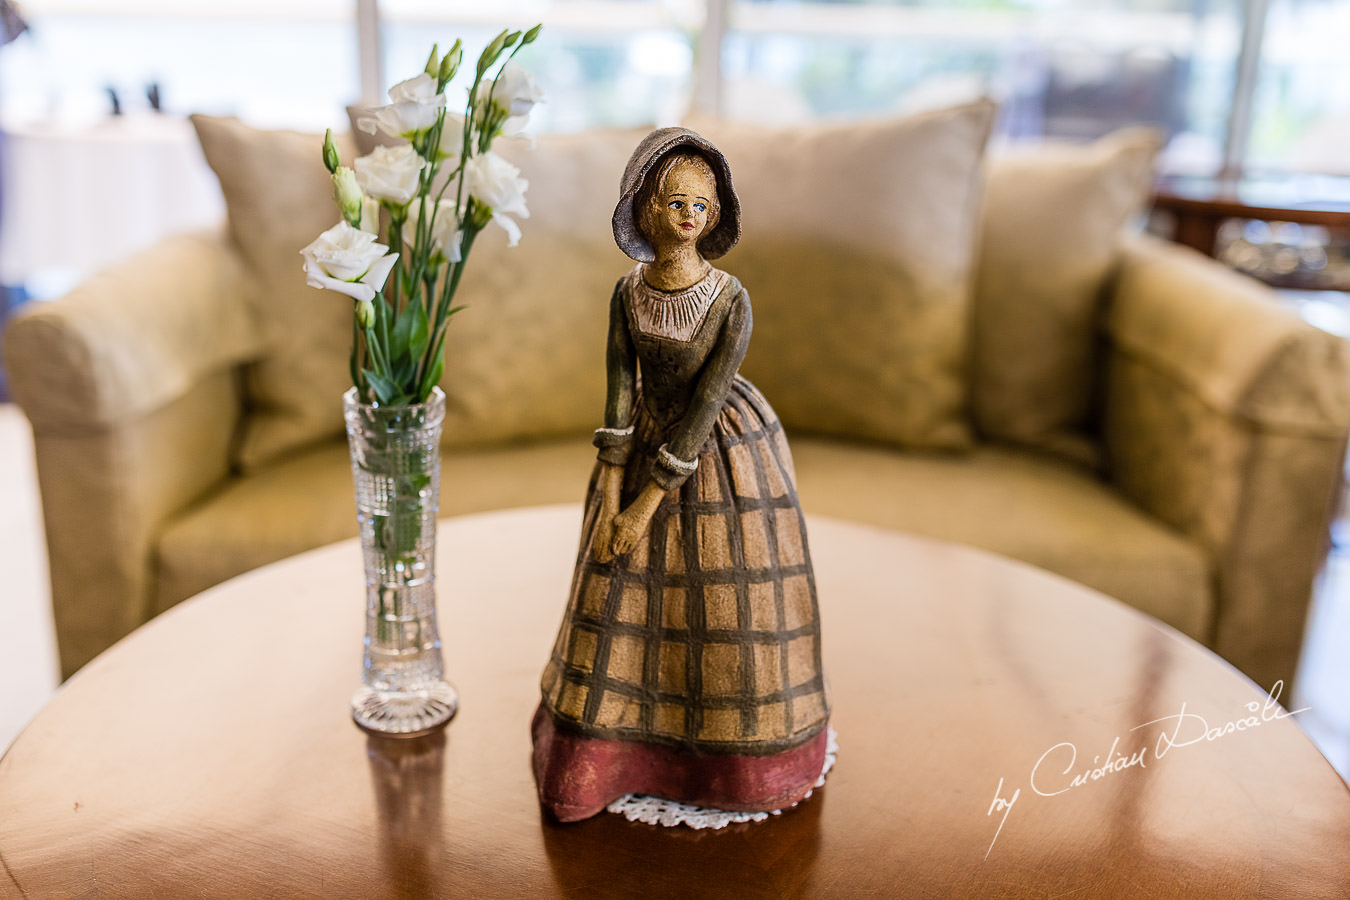 Beautiful statuette photographed by Cristian Dascalu during a wedding ceremony at St Raphael Hotel in Limassol, Cyprus.